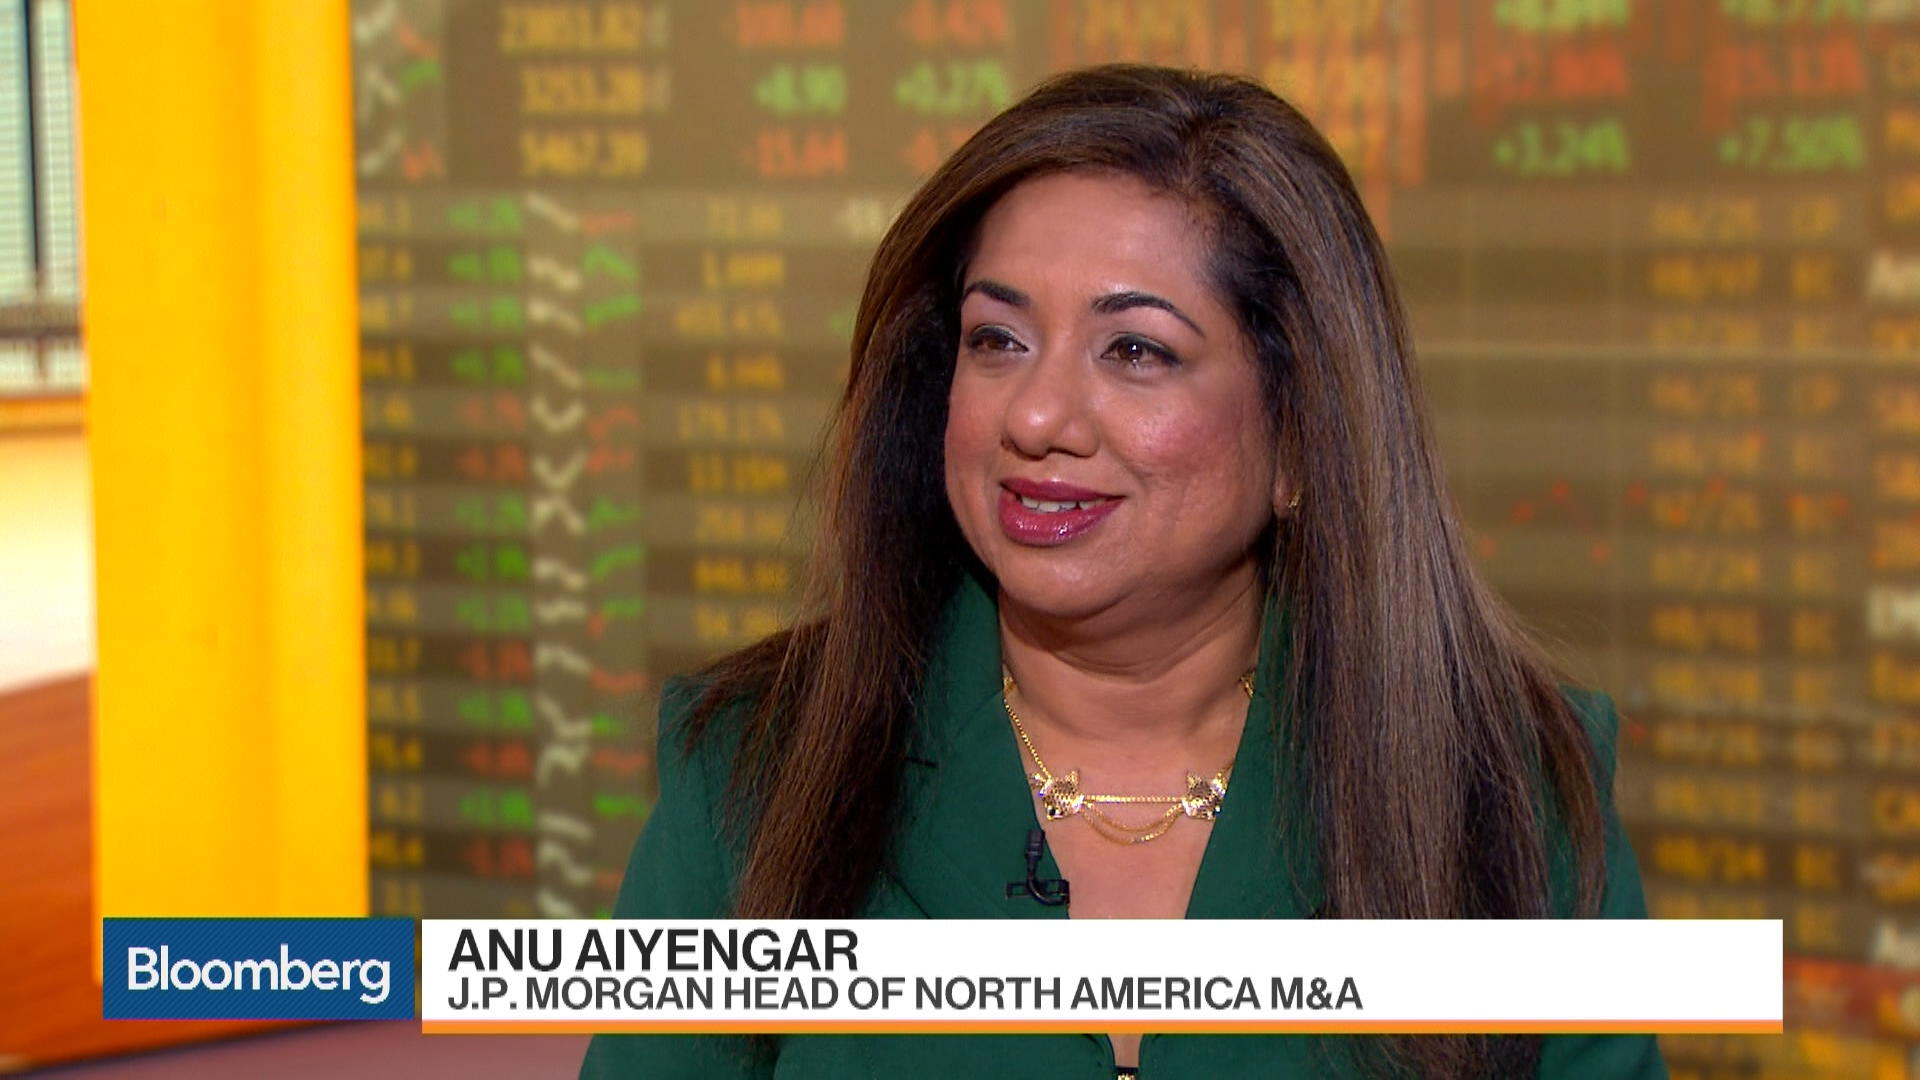 Jpmorgan S Blockbuster Weekend For M Amp A Bloomberg